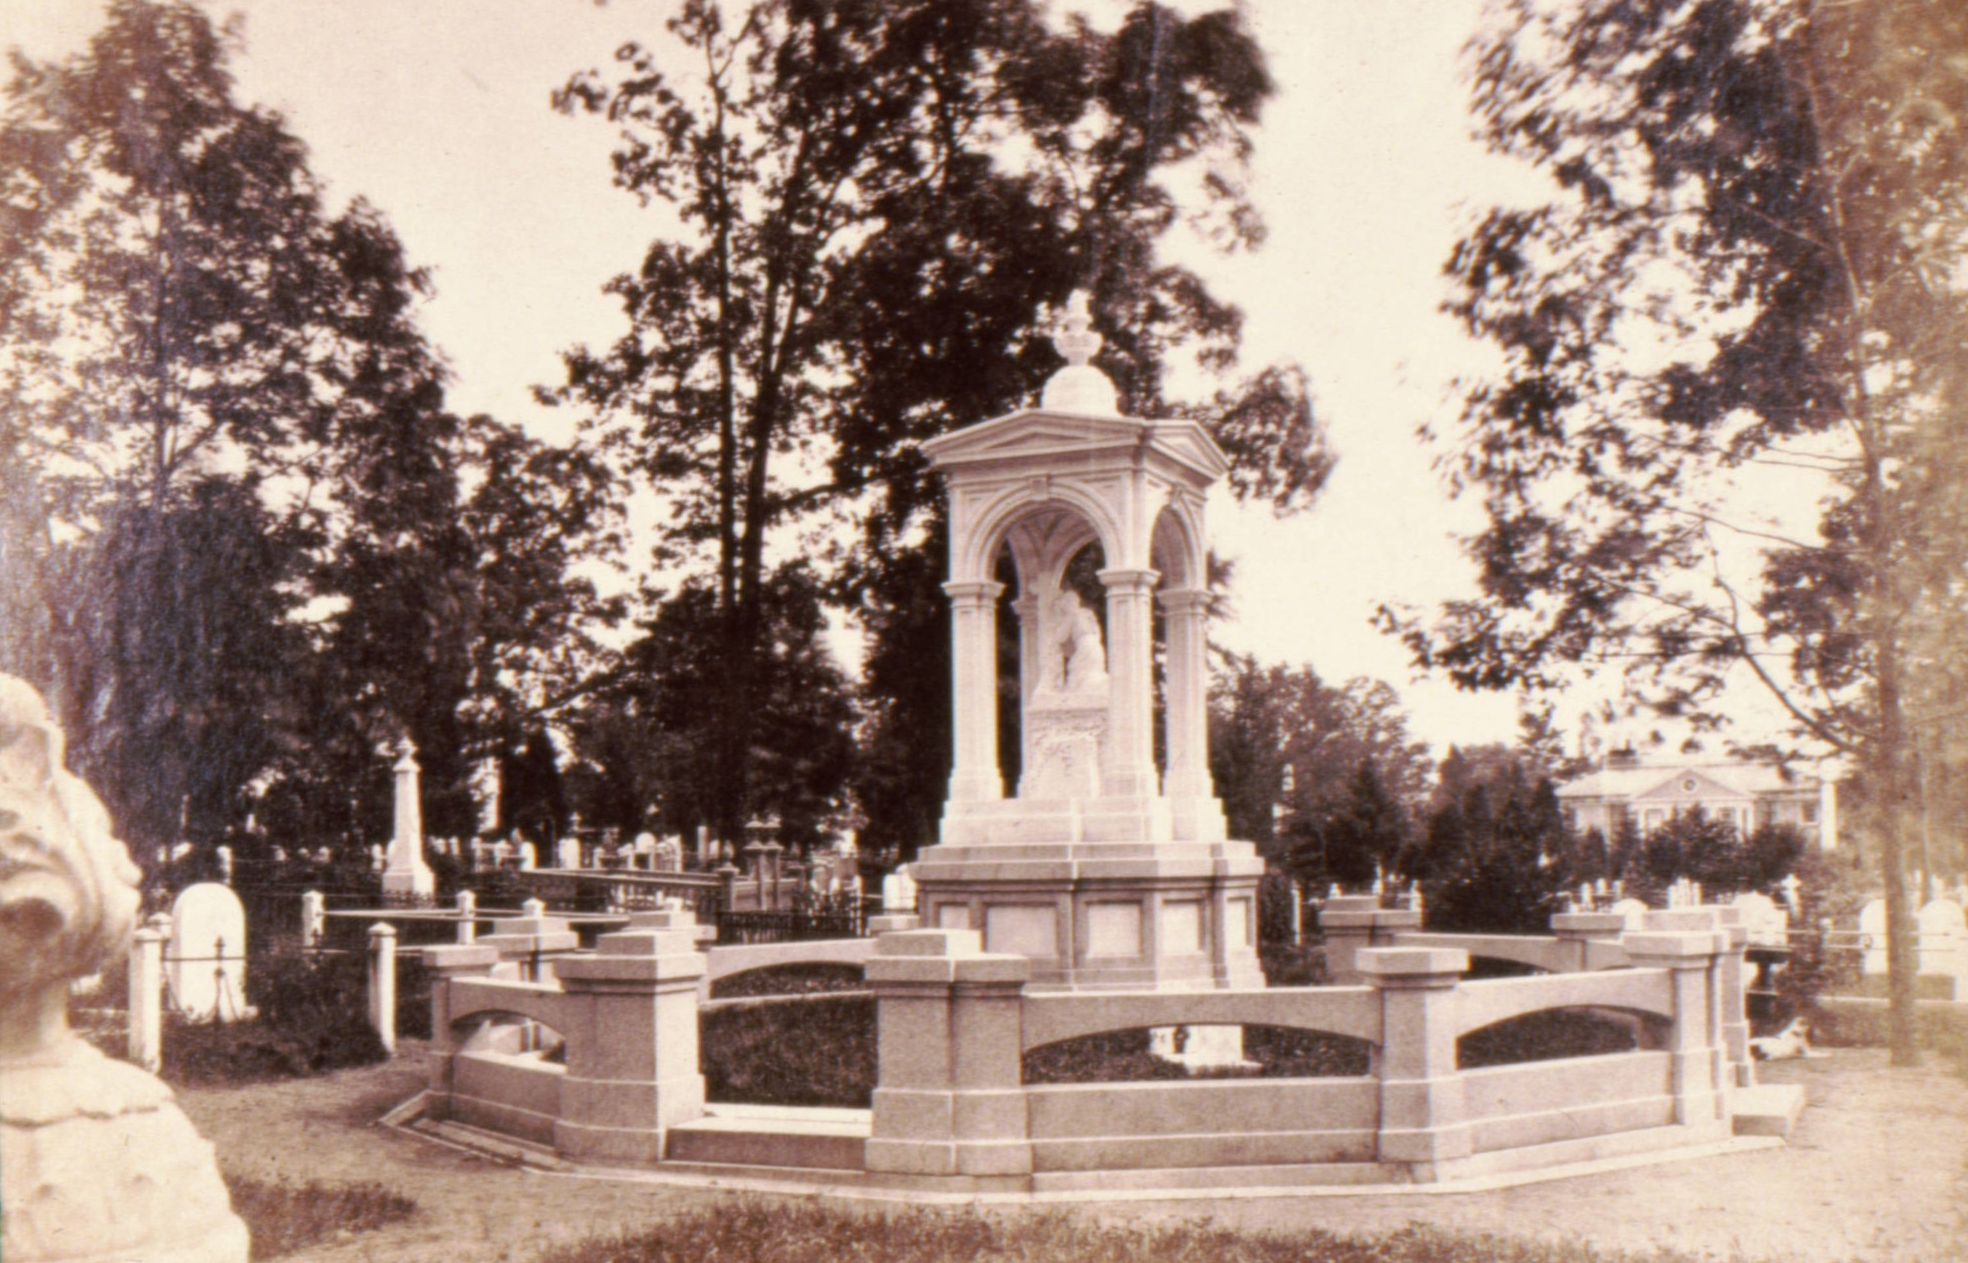 Eshrick Family Monument (Long).jpg